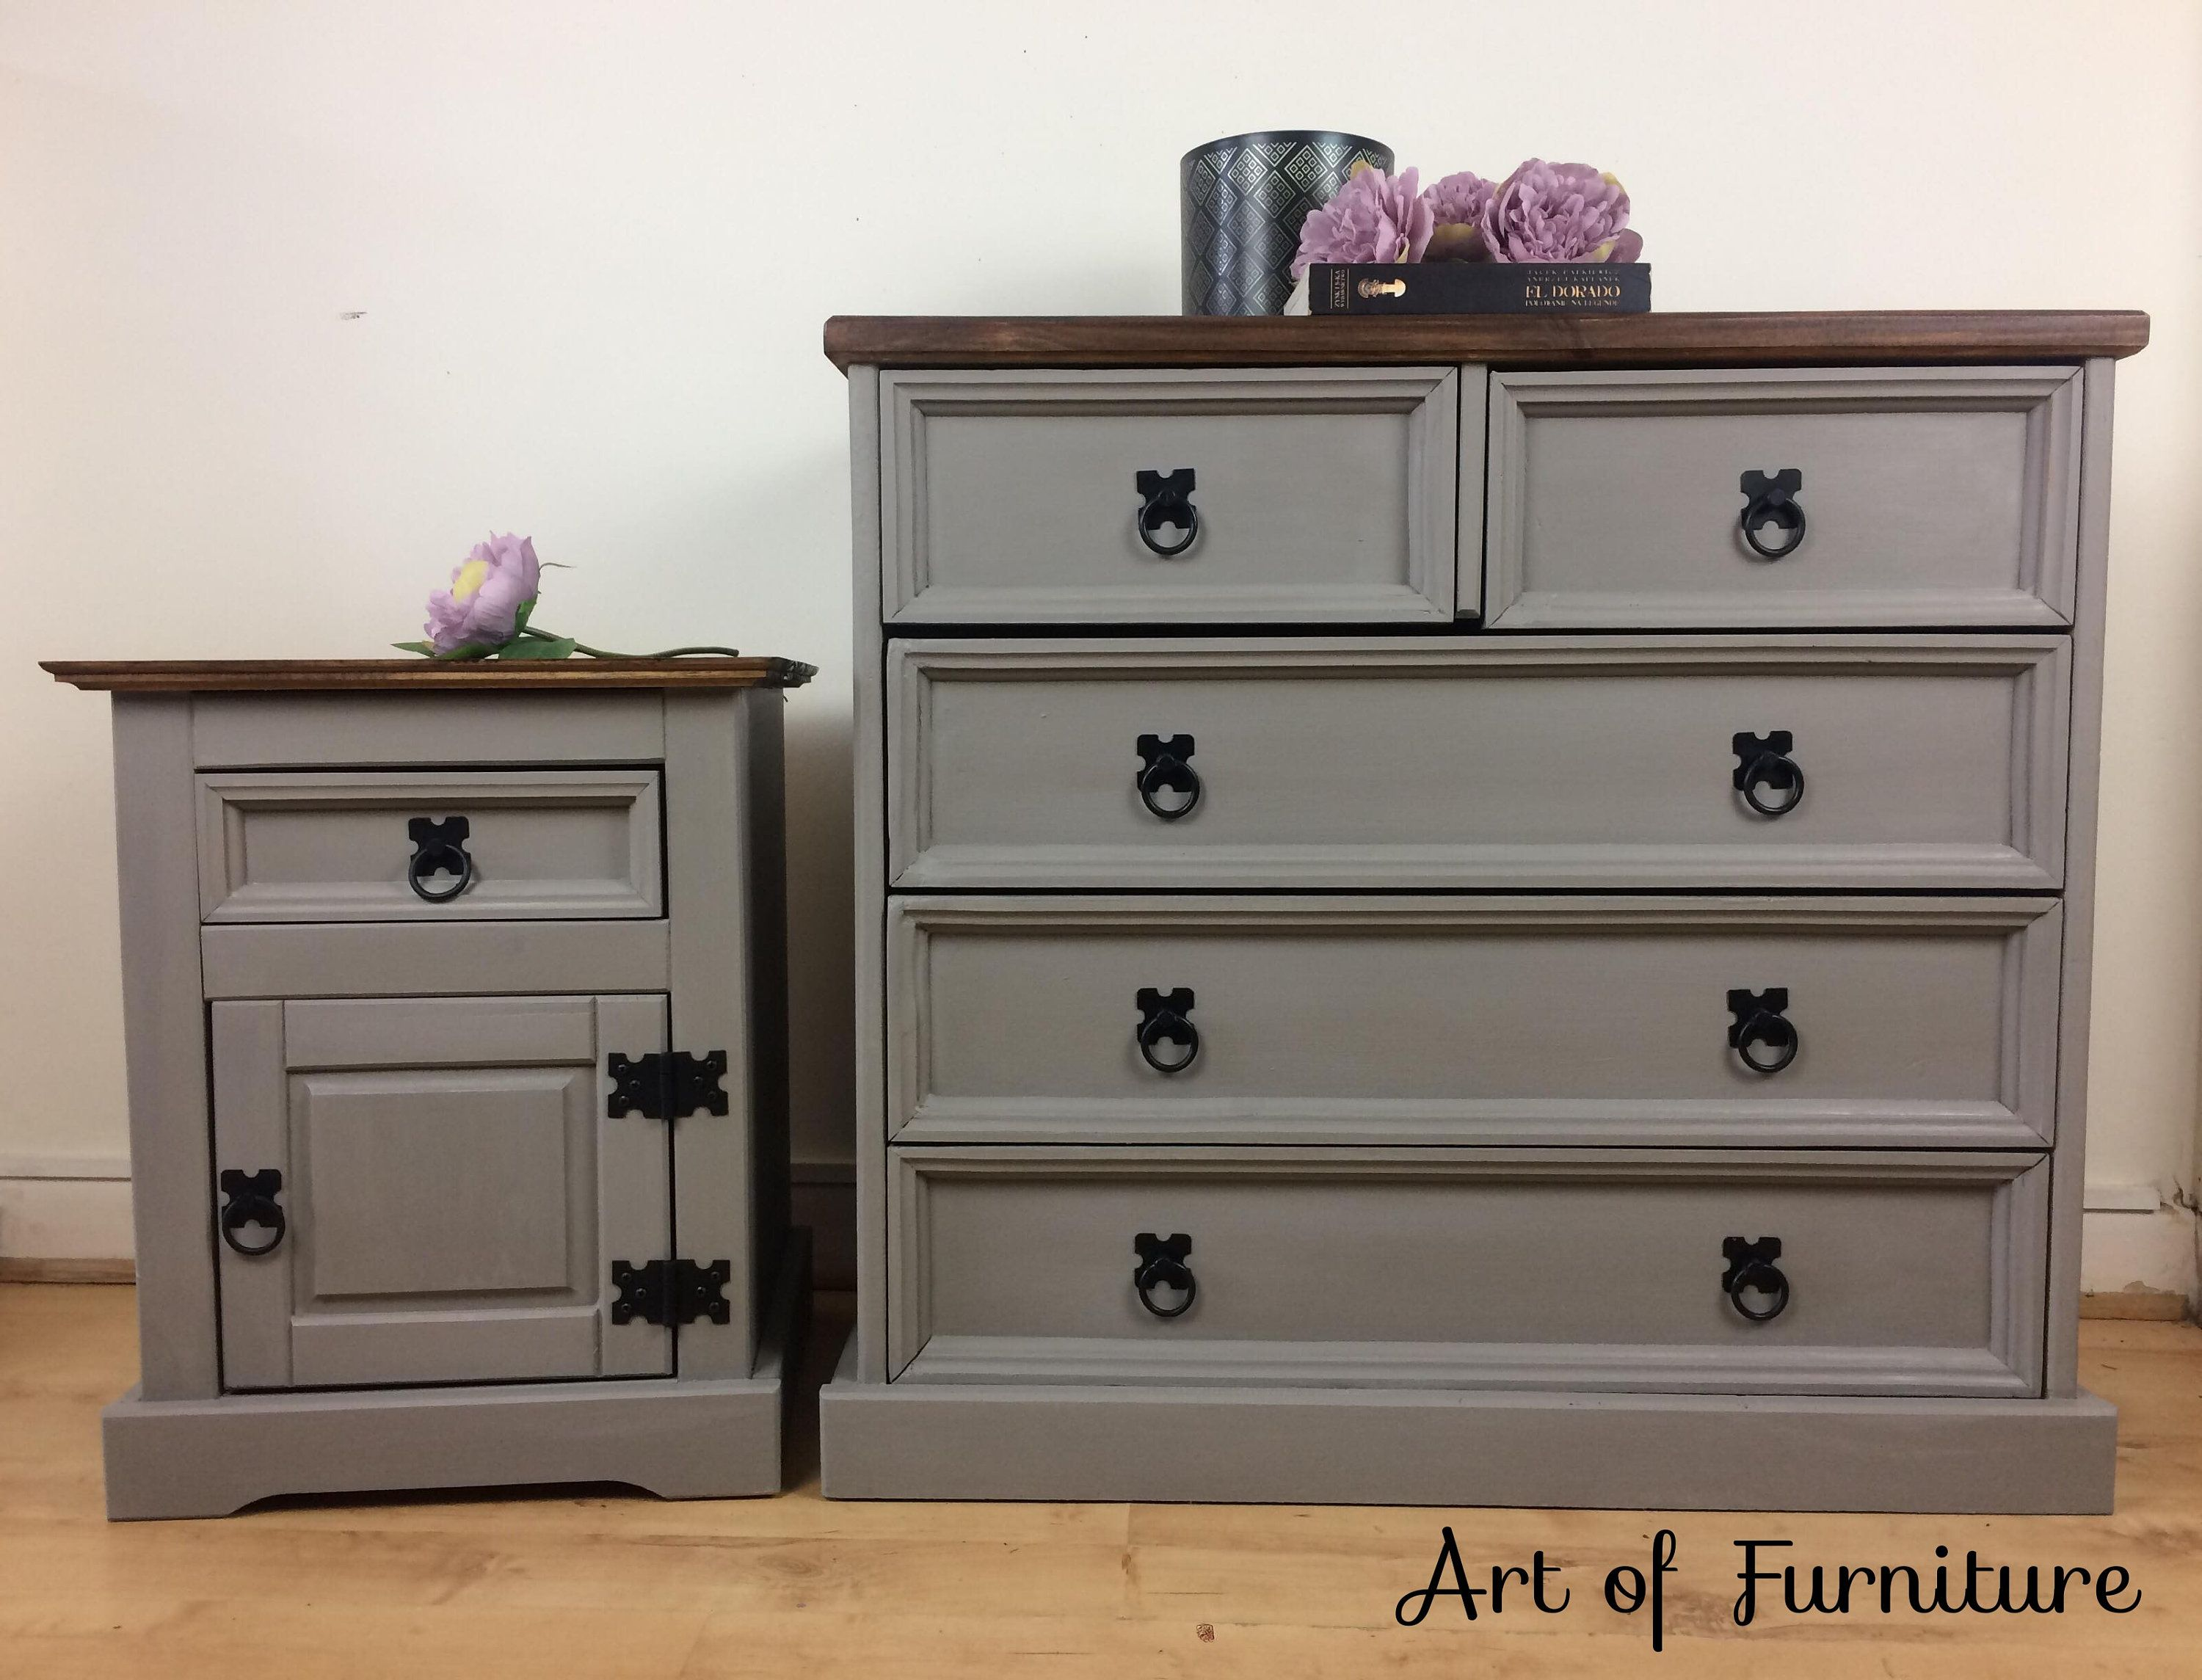 The Regatta Grey Bedrooom Range From The Cotswold Company Featuring Beautifully Grey Painted Bedroom Furniture Including Chests Of Drawers Grey Bedroom Furniture Painted Bedroom Furniture Pine Bedroom Furniture